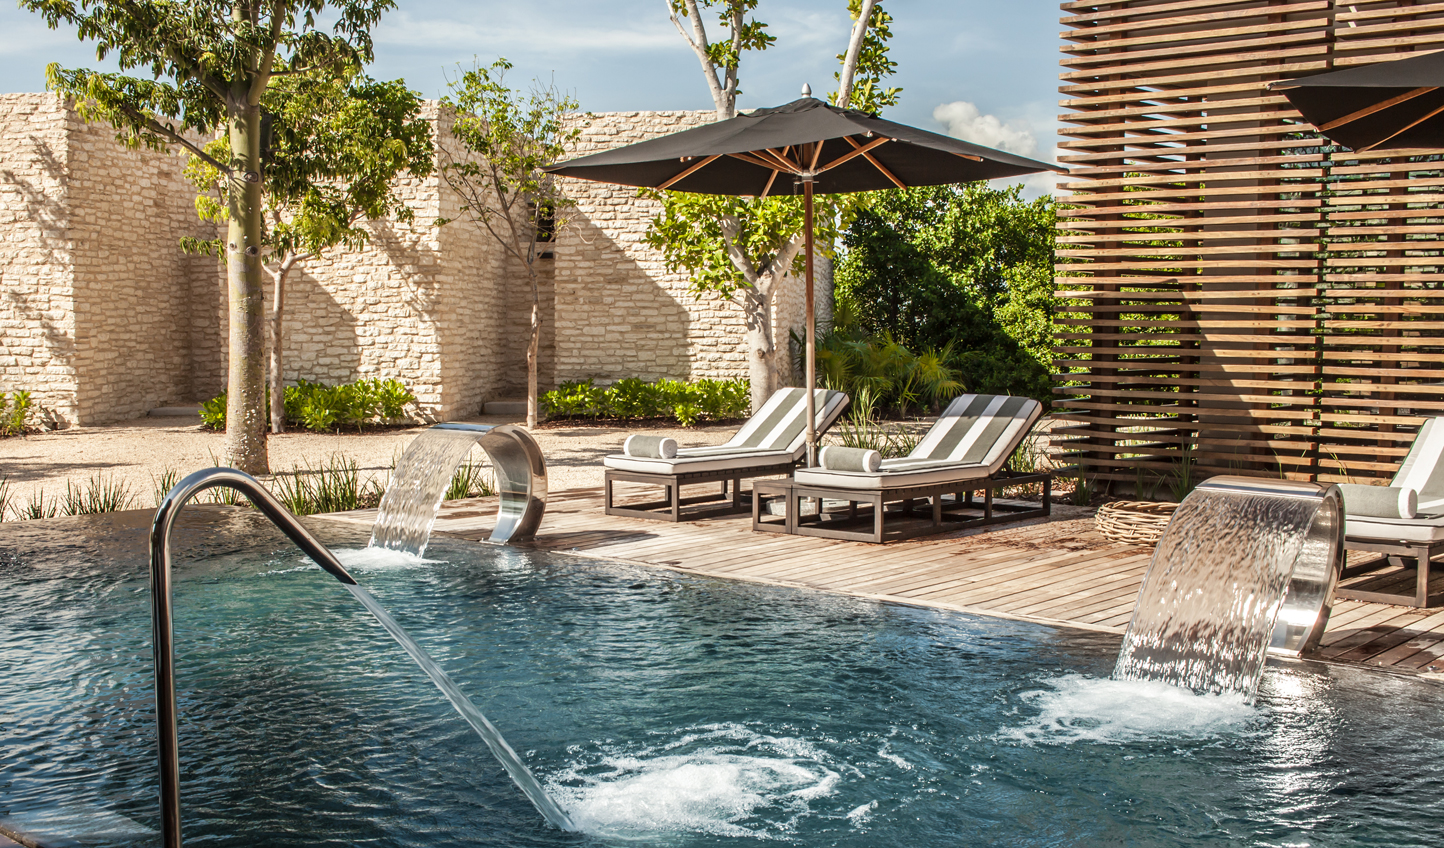 Mindfulness is key in Nizuc's Mayan inspired spa